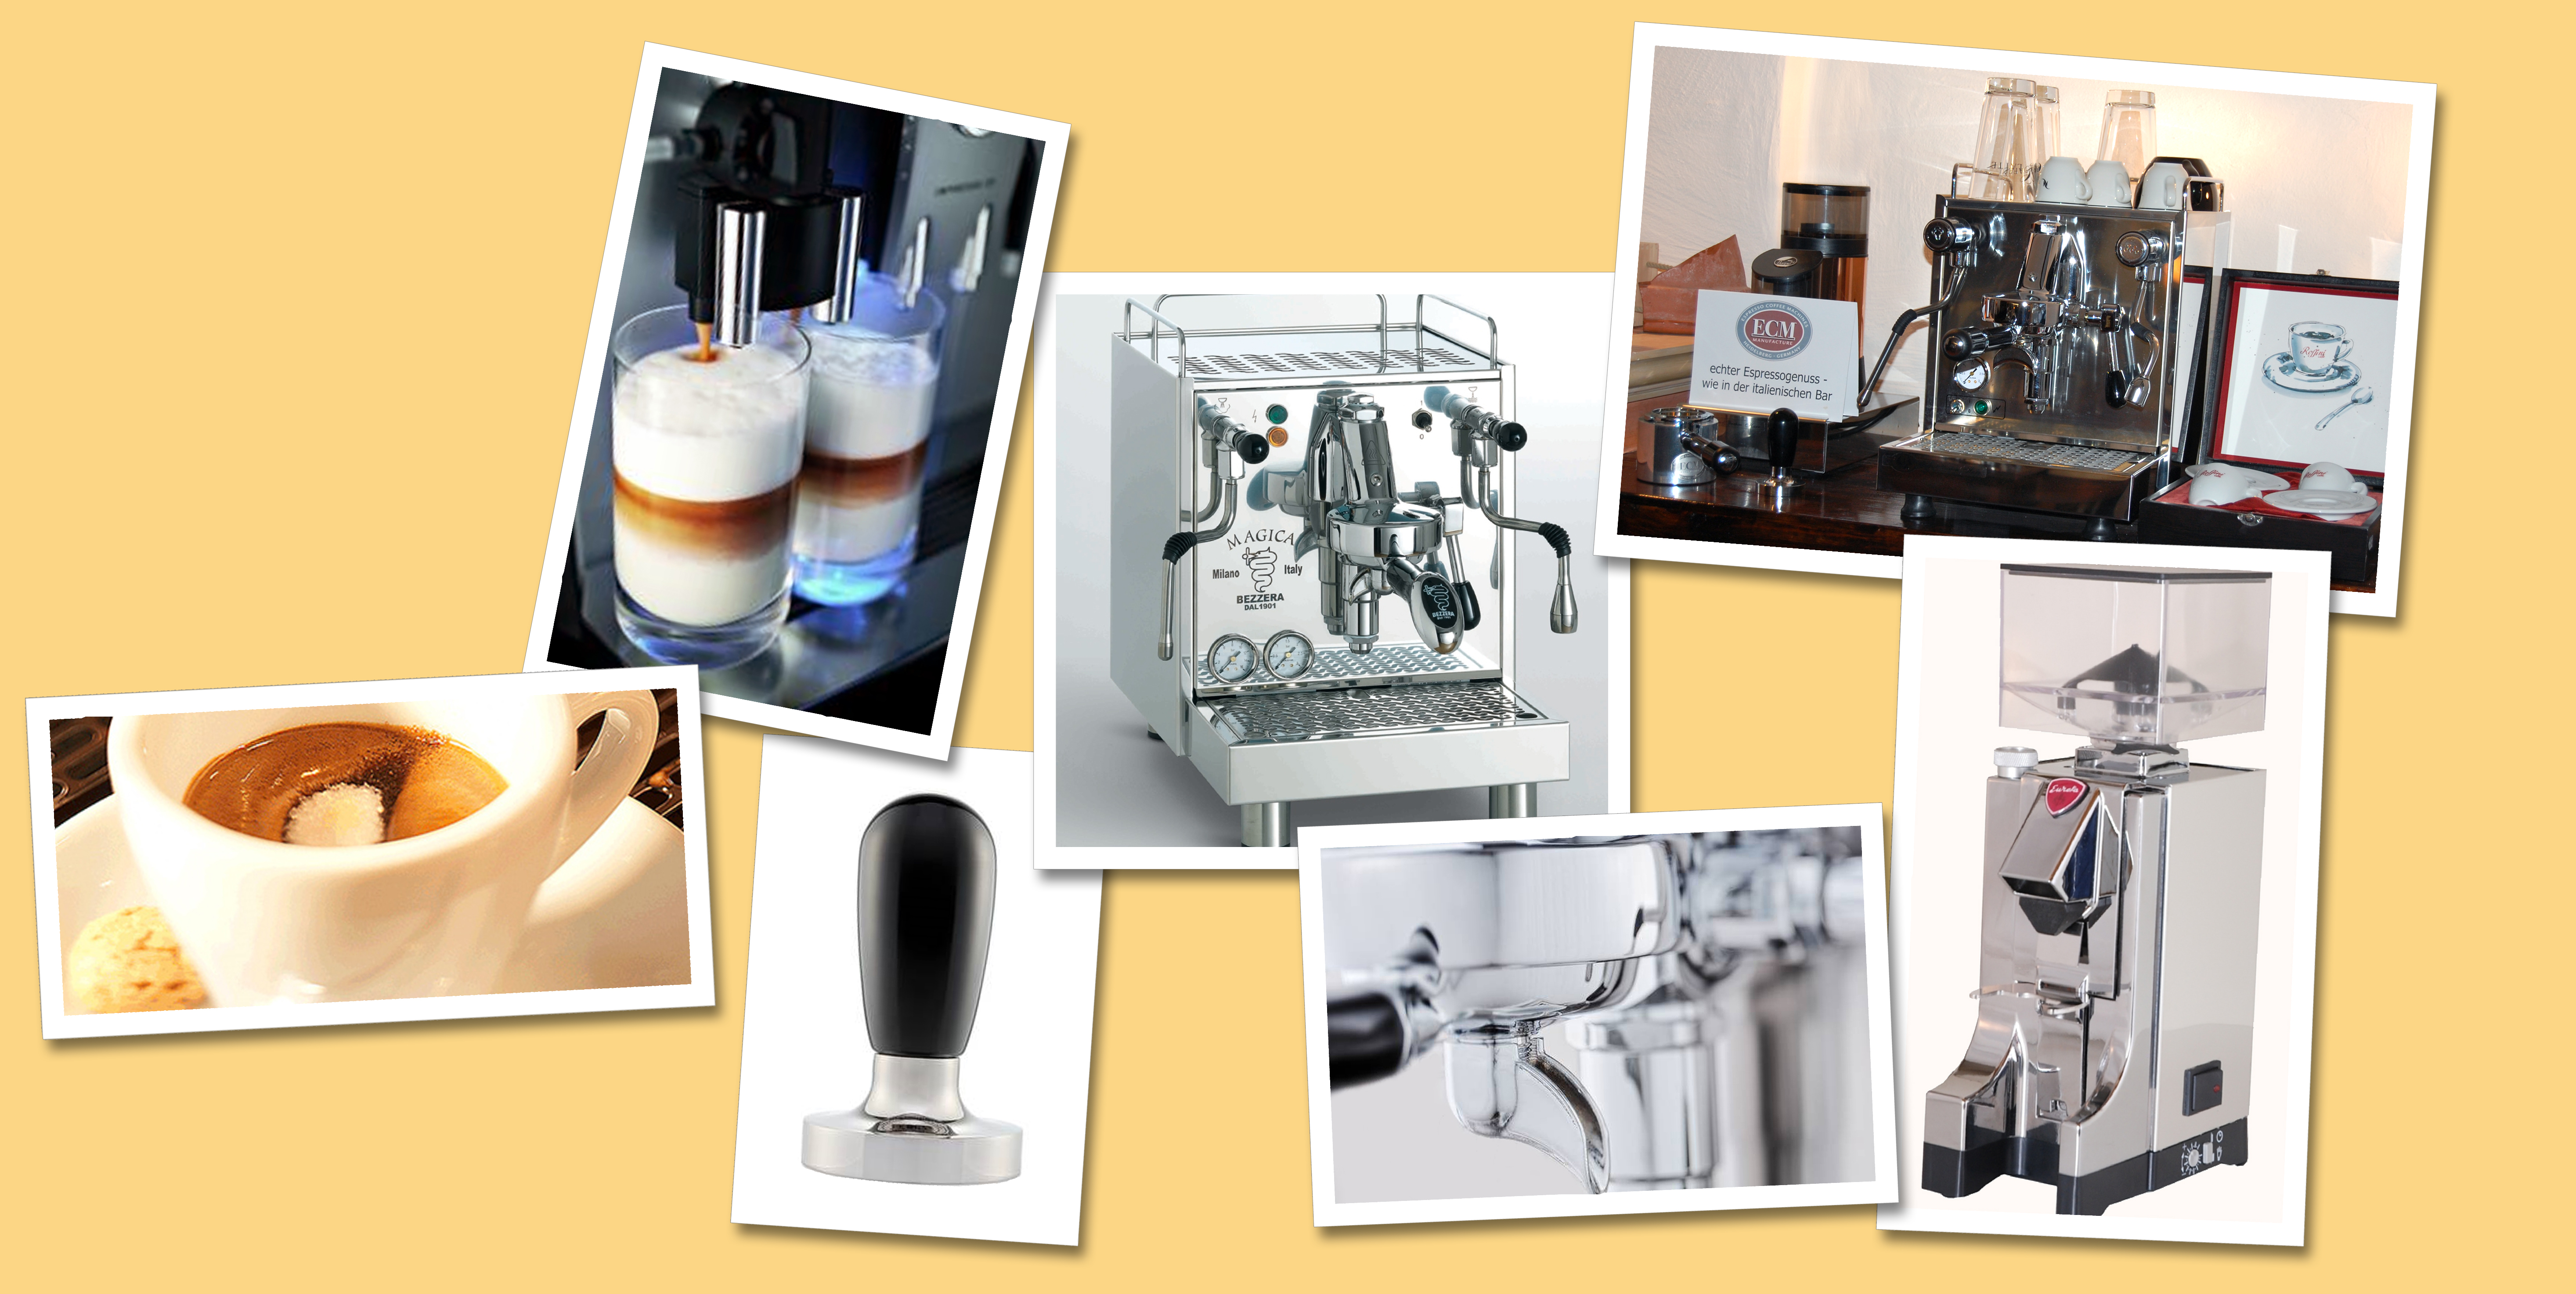 tl_files/pictures/kaffee-und-espressomaschinen/Kaffeemaschinen Collage 02.jpg